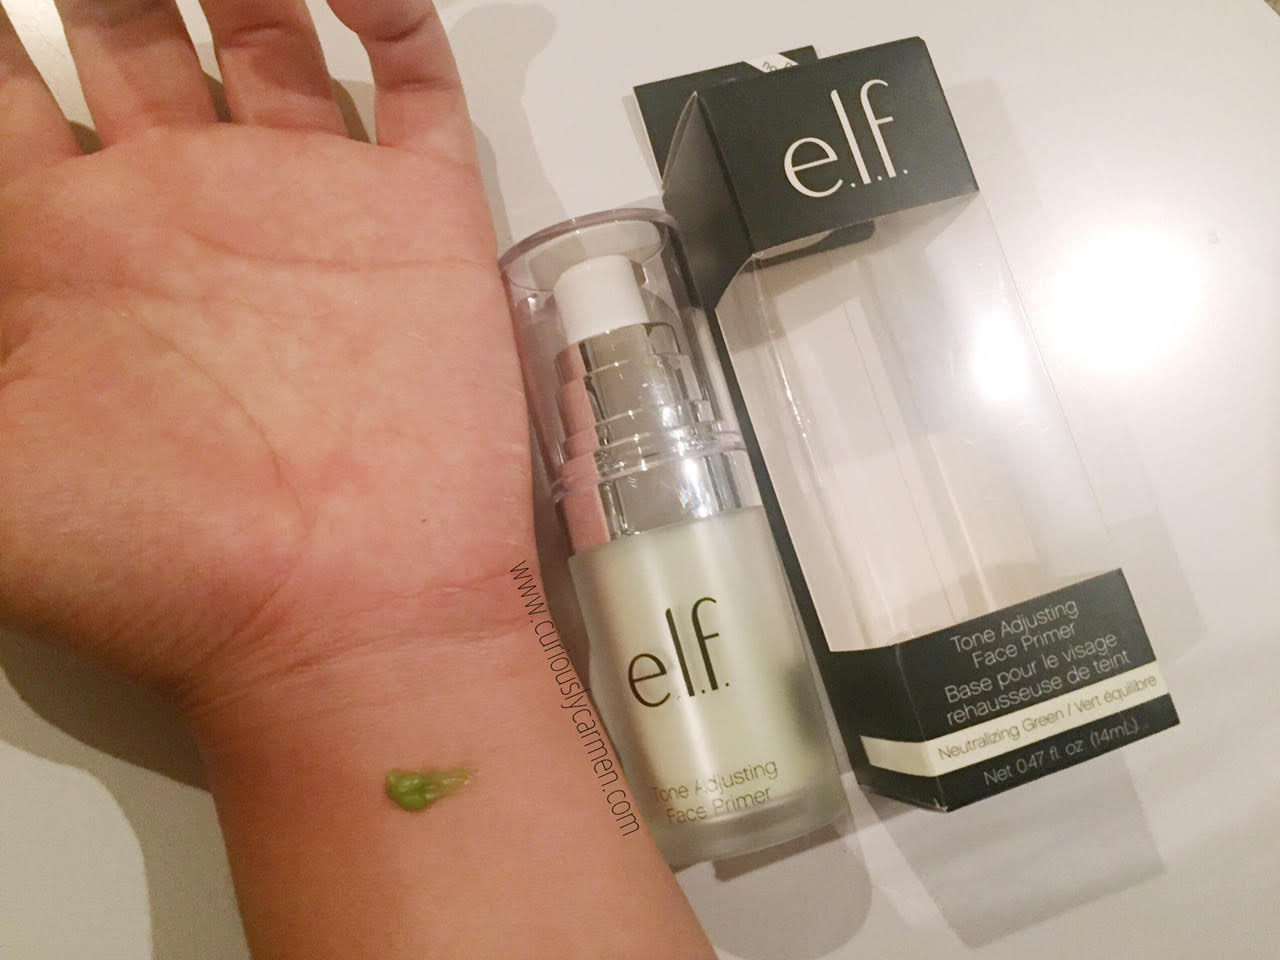 ELF Tone Adjusting Primer Packaging